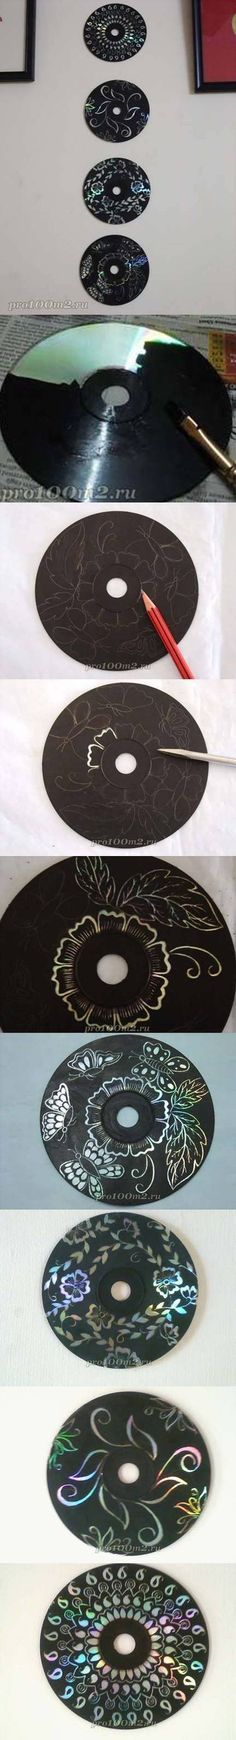 DIY wall decoration using old cds!